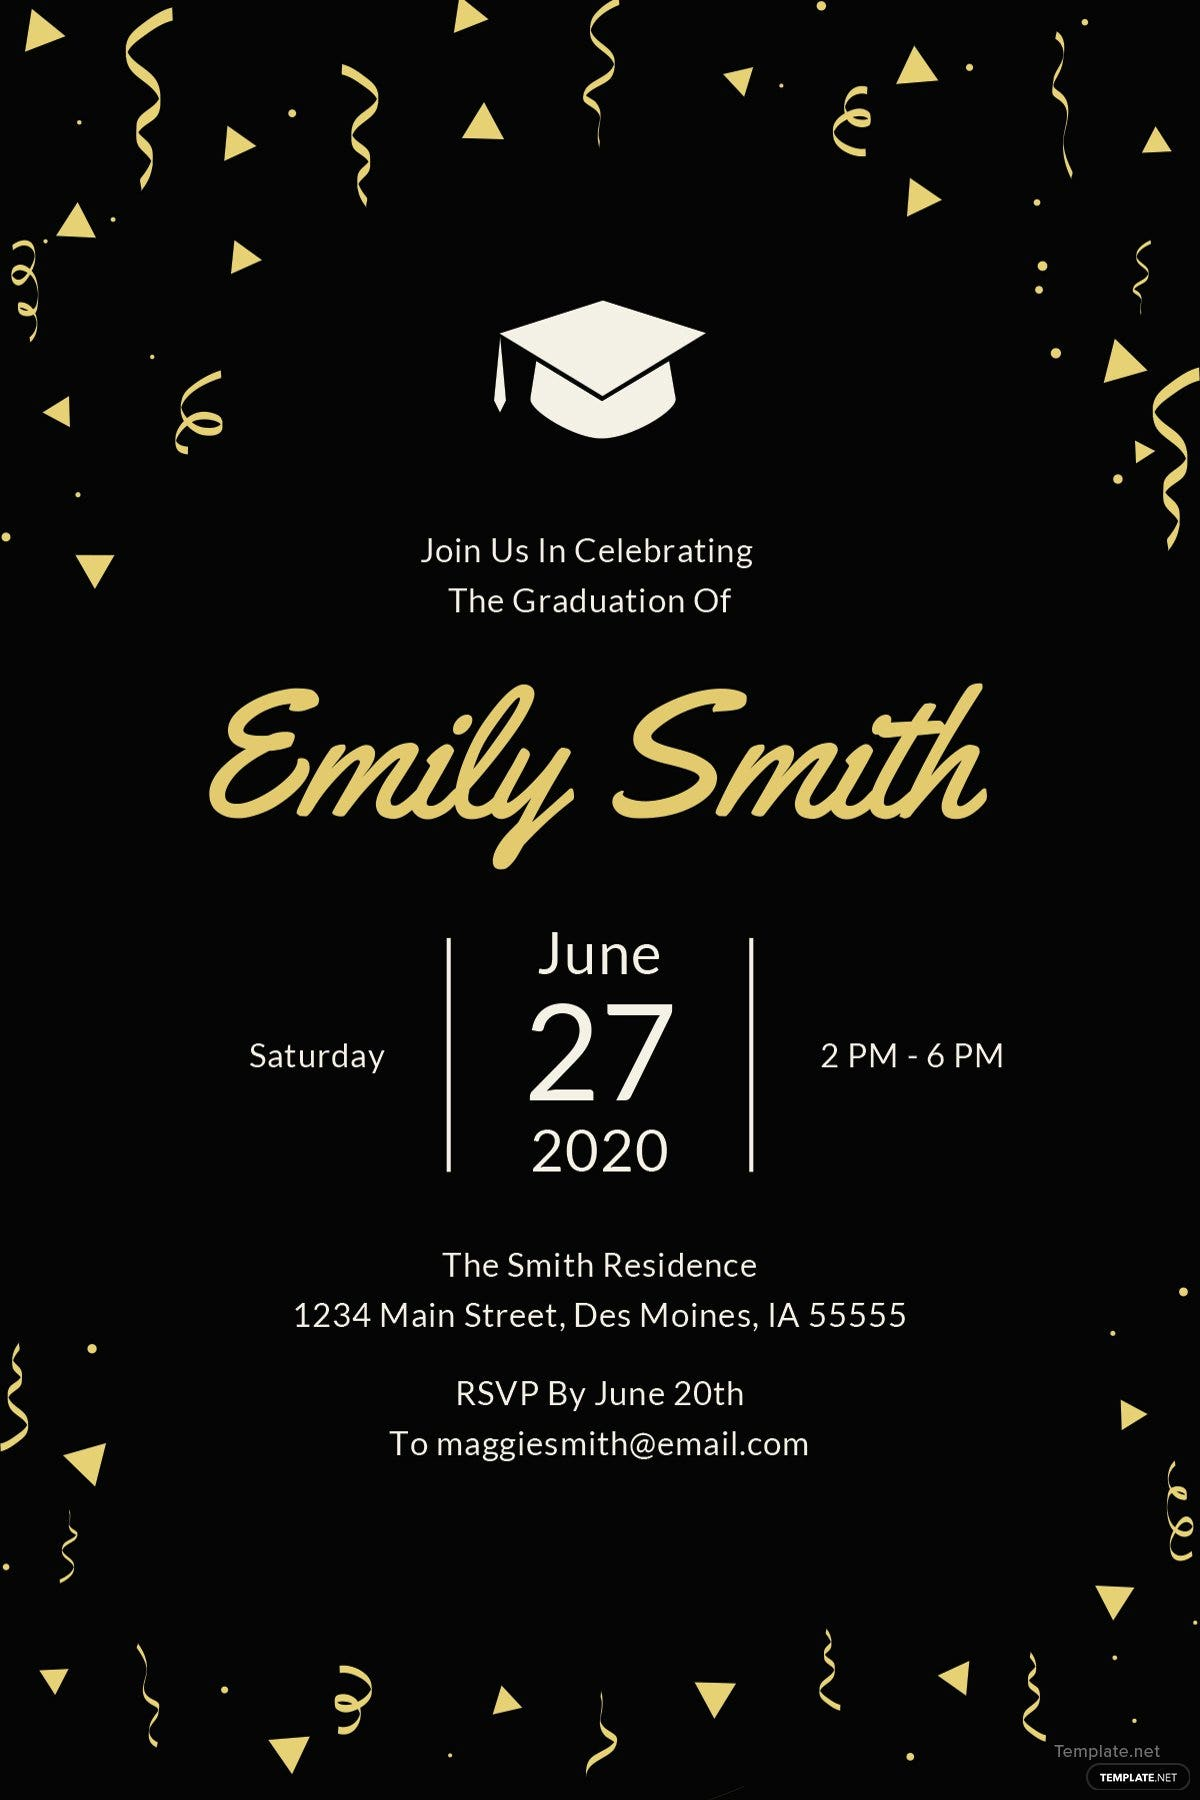 Free graduation invitation template in microsoft word microsoft graduation invitation template stopboris Choice Image